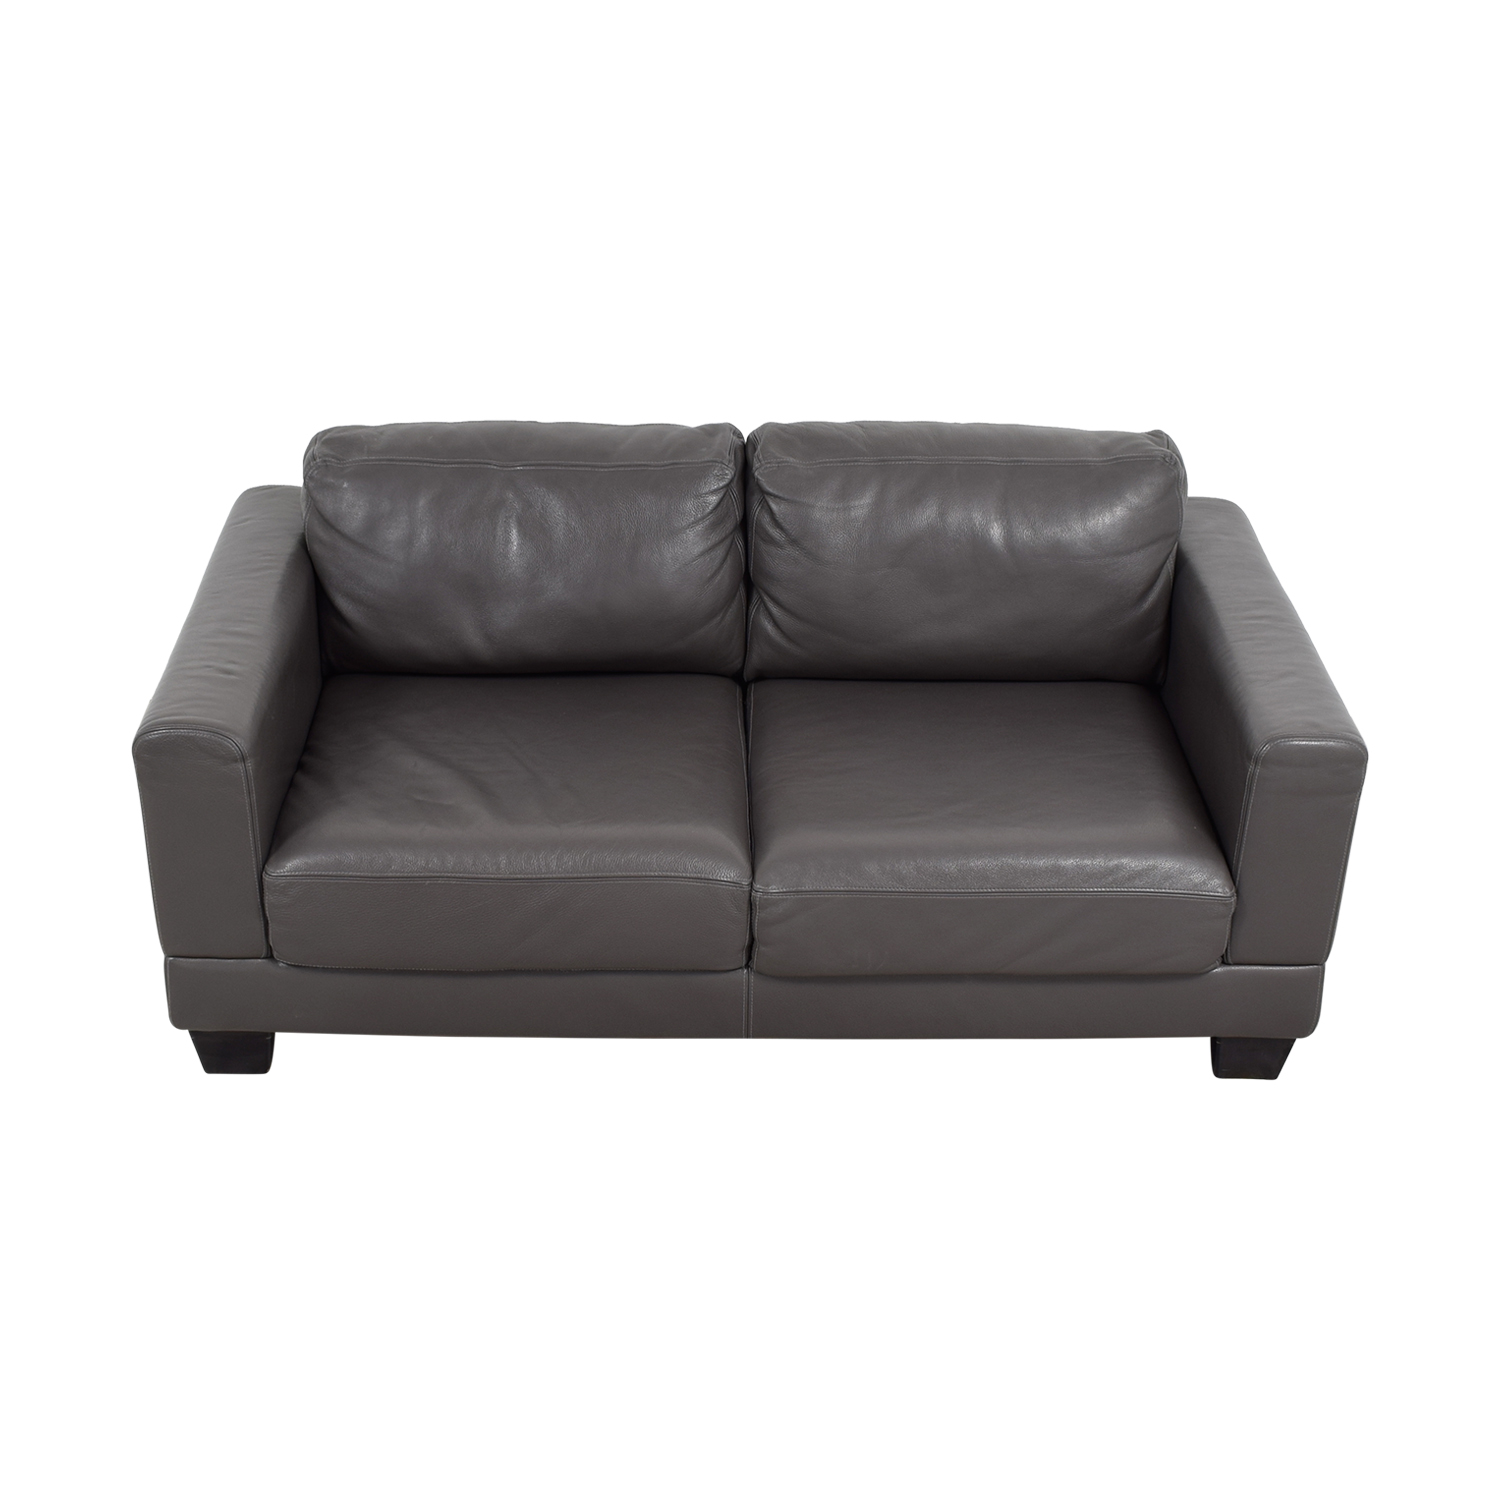 Shop Second Hand Loveseats Under $500